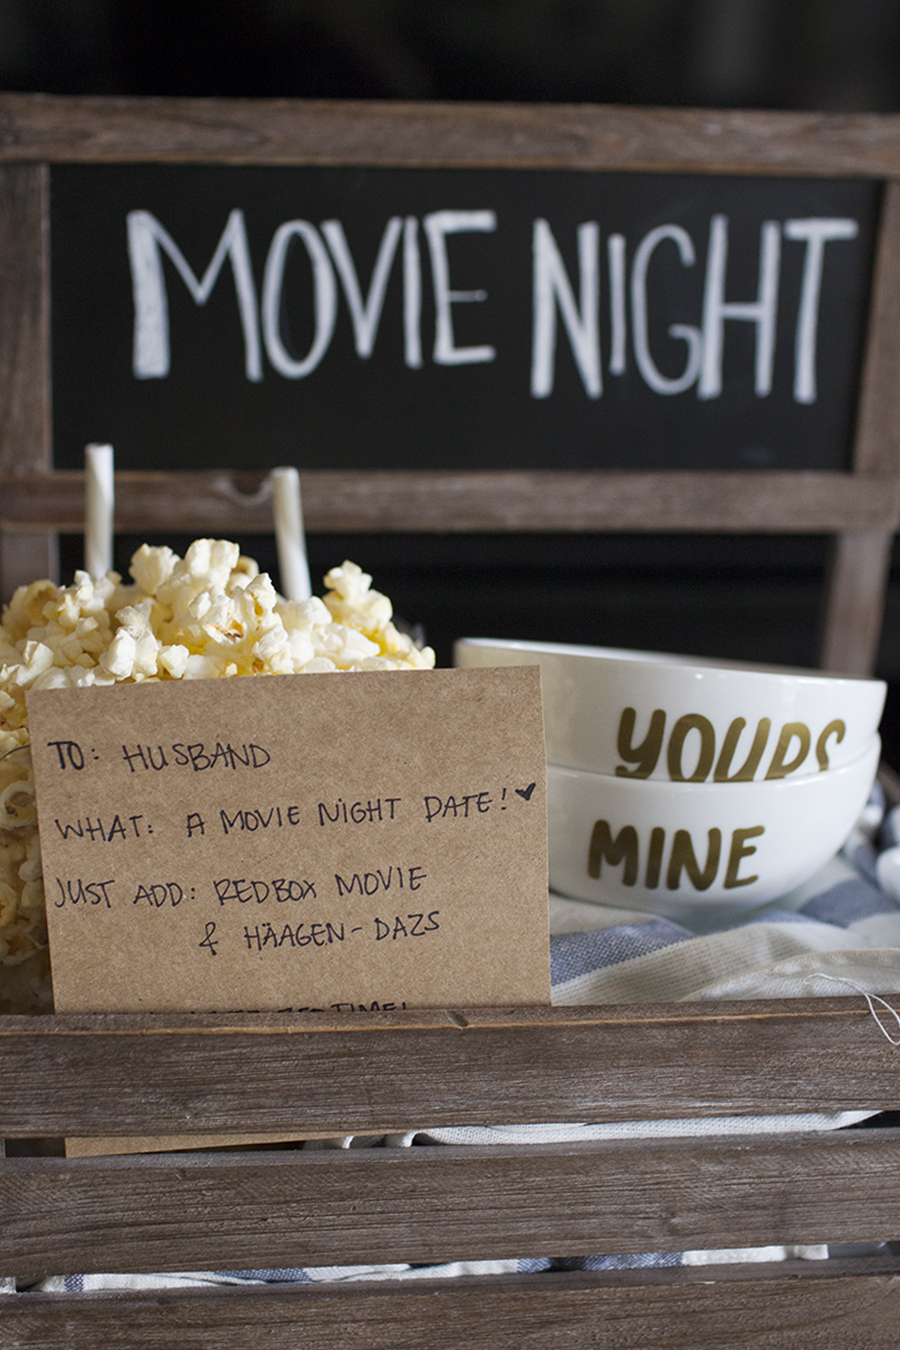 movie night valentine's day kit for date